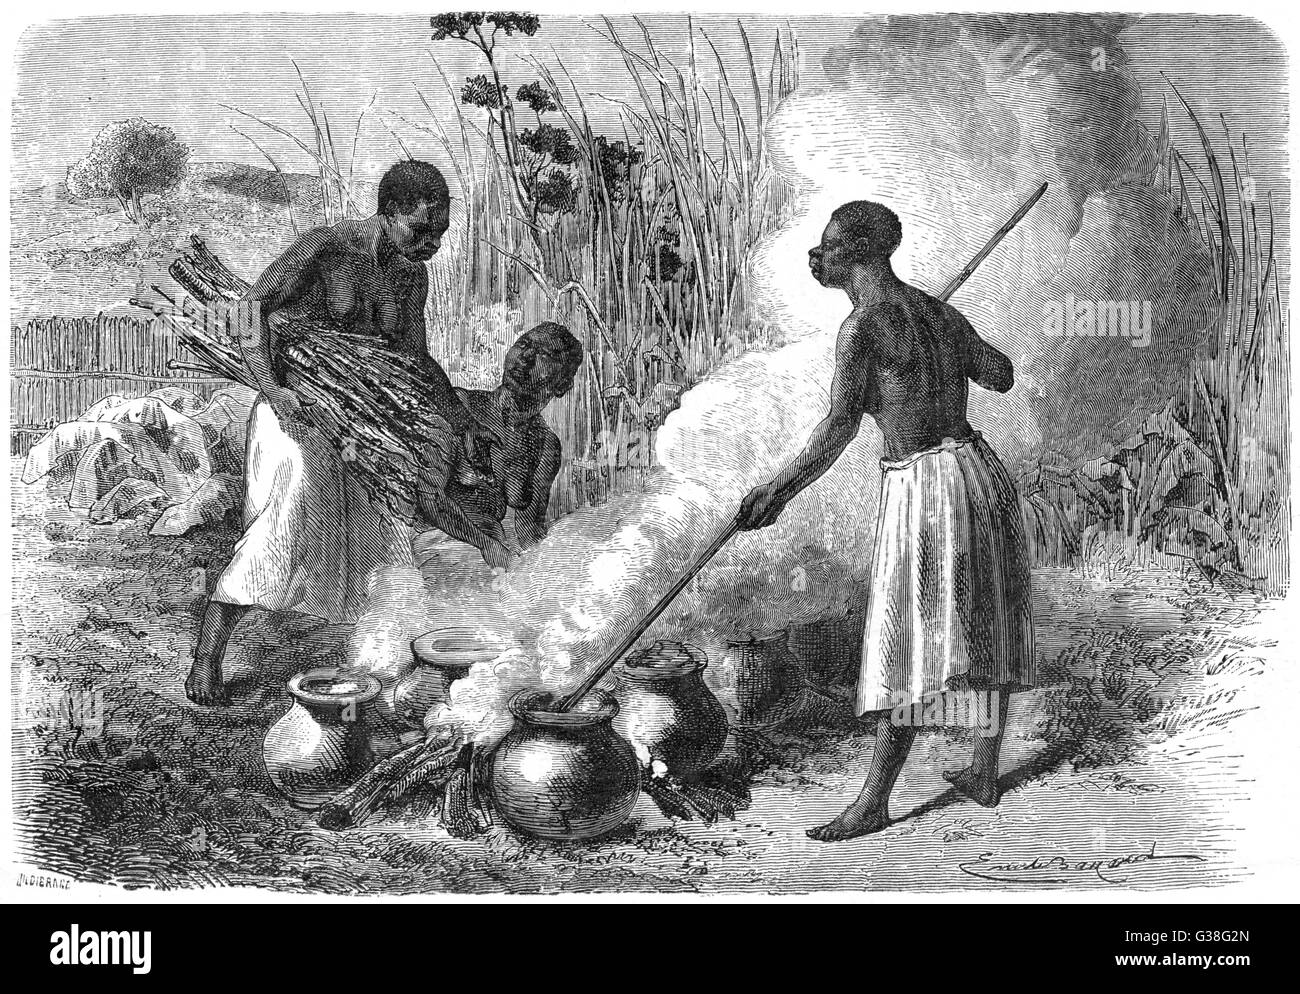 Primitive beer-making in Zanzibar, East Africa        Date: 1877 Stock Photo